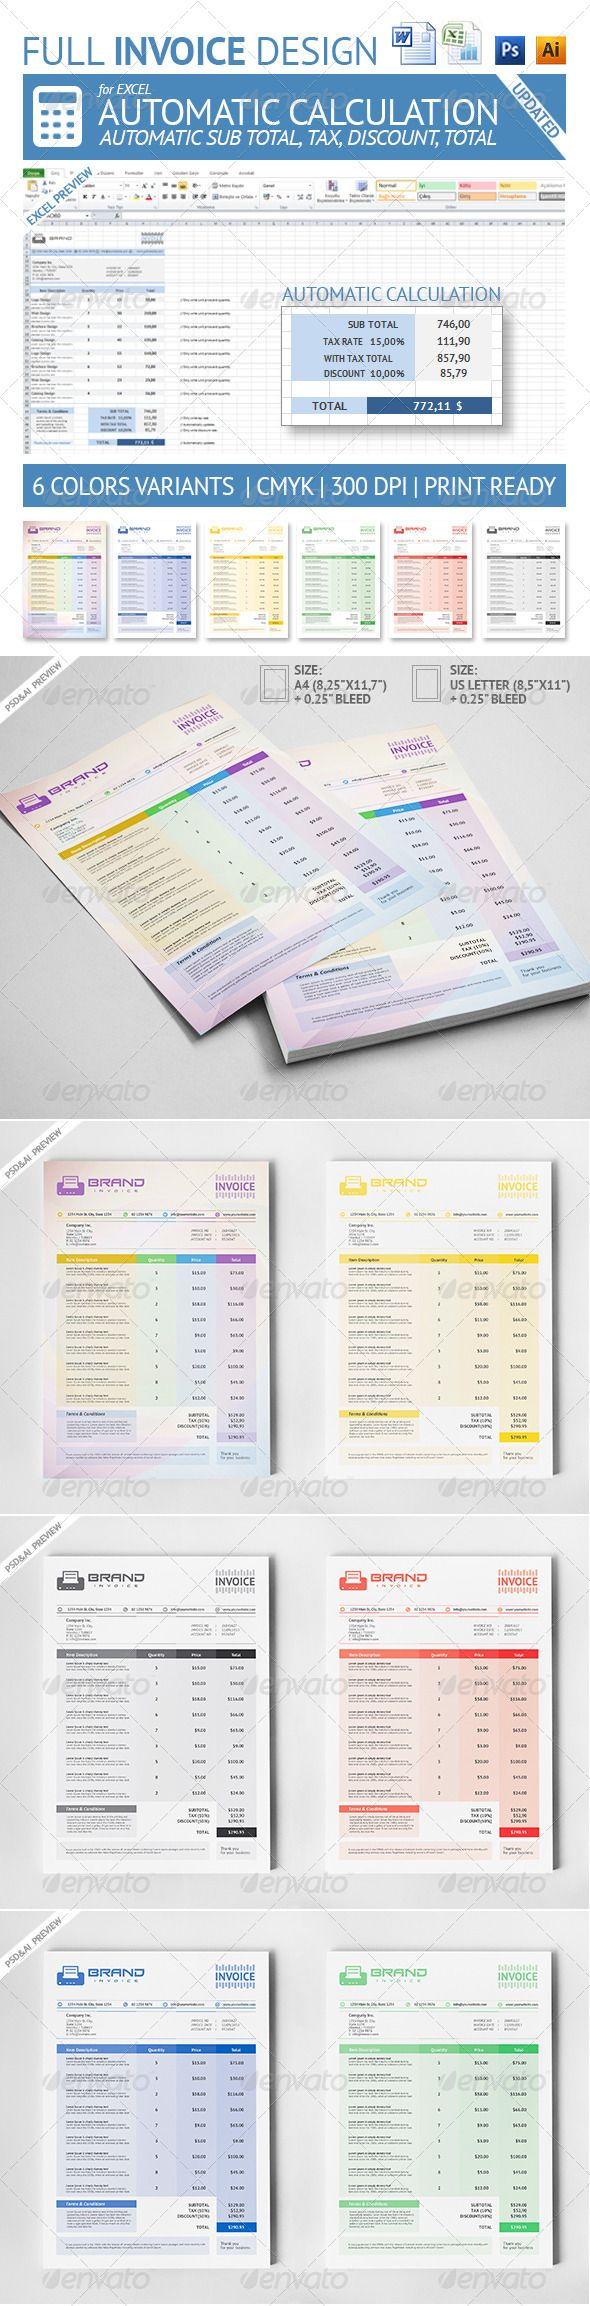 Excel Template For Invoice Prepossessing Invoice  Pinterest  Template Psd Templates And Business Proposal